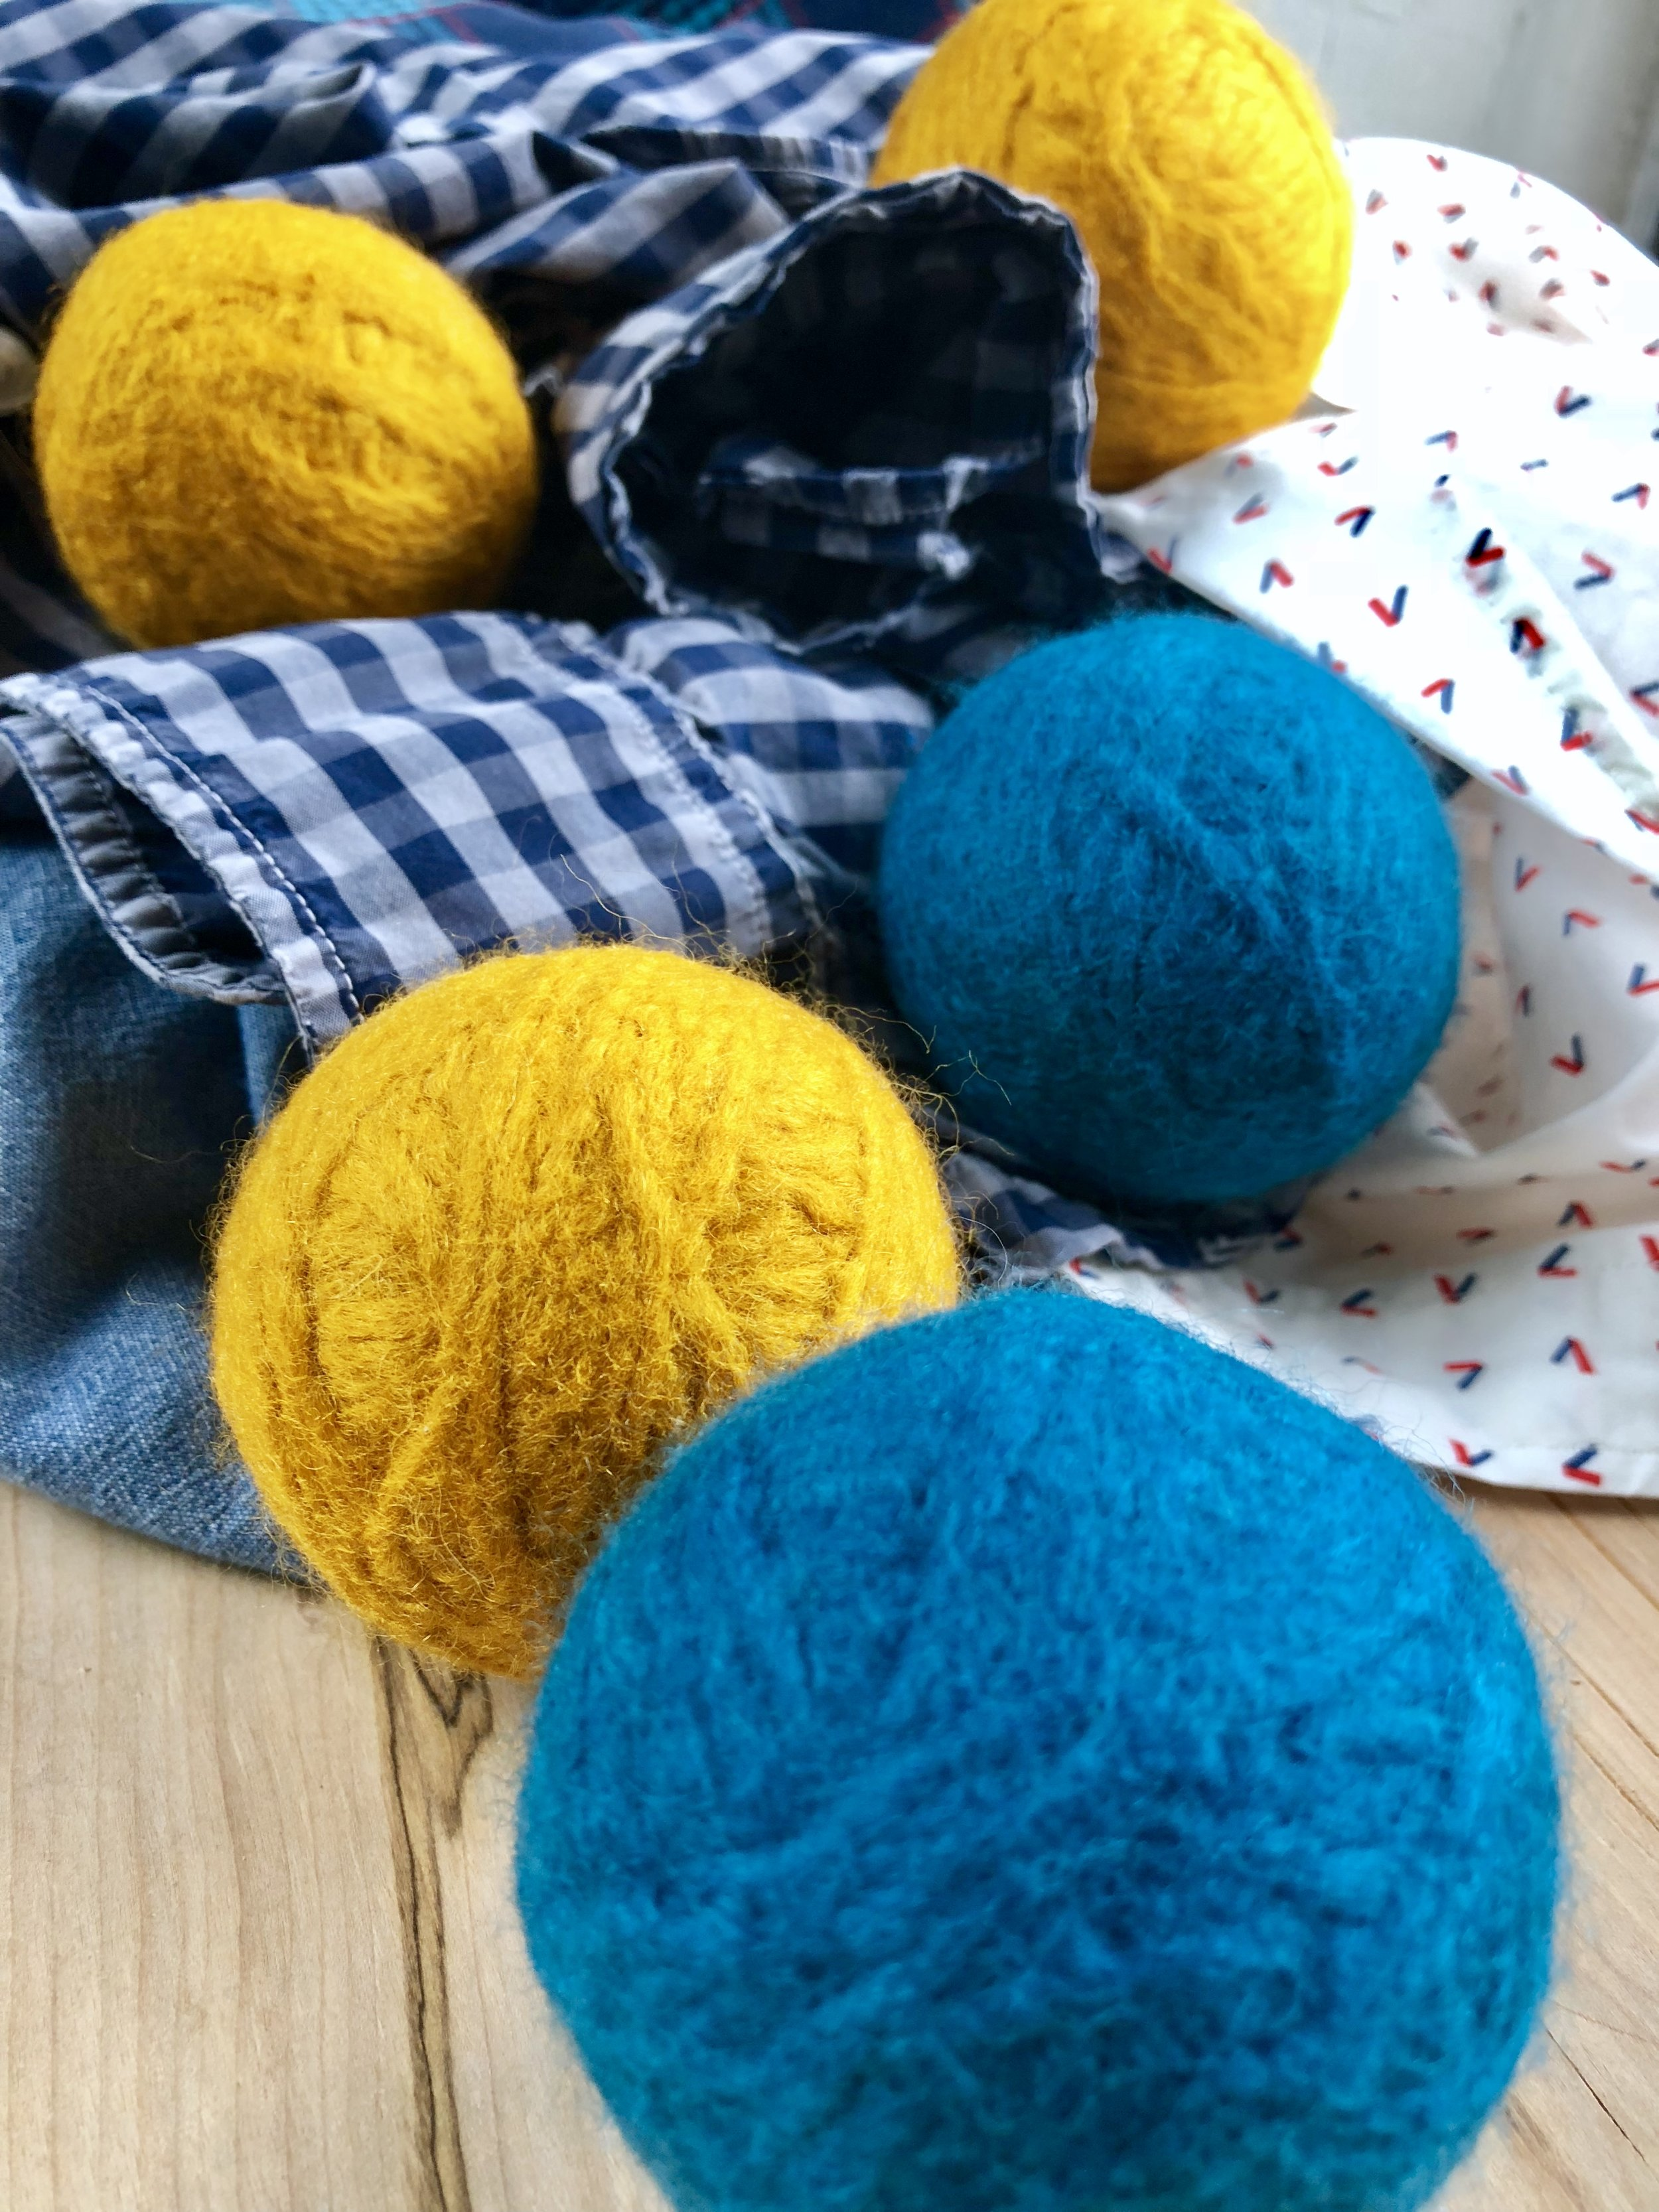 DIY Laundry Dryer Wool Yarn Balls and more Spring Cleaning hacks and tips! #yarnie #yarnaddiction #handmadecrafts #handmadehome #yarn #handmade #washables #wash #cleaning #laundromat #dryer #linen #scrubbing #washing #detergent #household